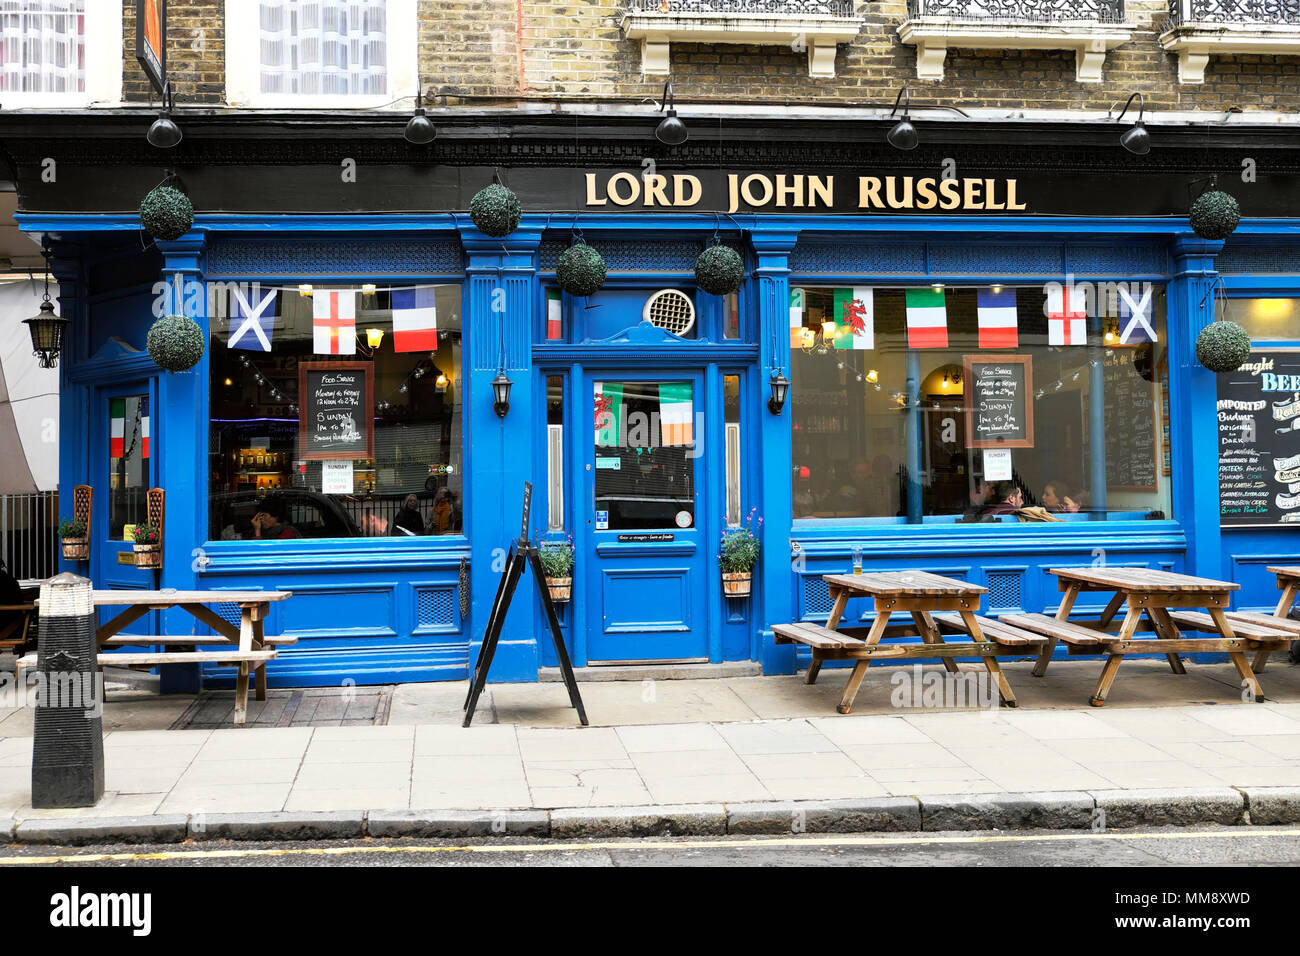 Exterior view of Lord John Russell pub on Marchmont Street in London WC1 England UK    KATHY DEWITT - Stock Image